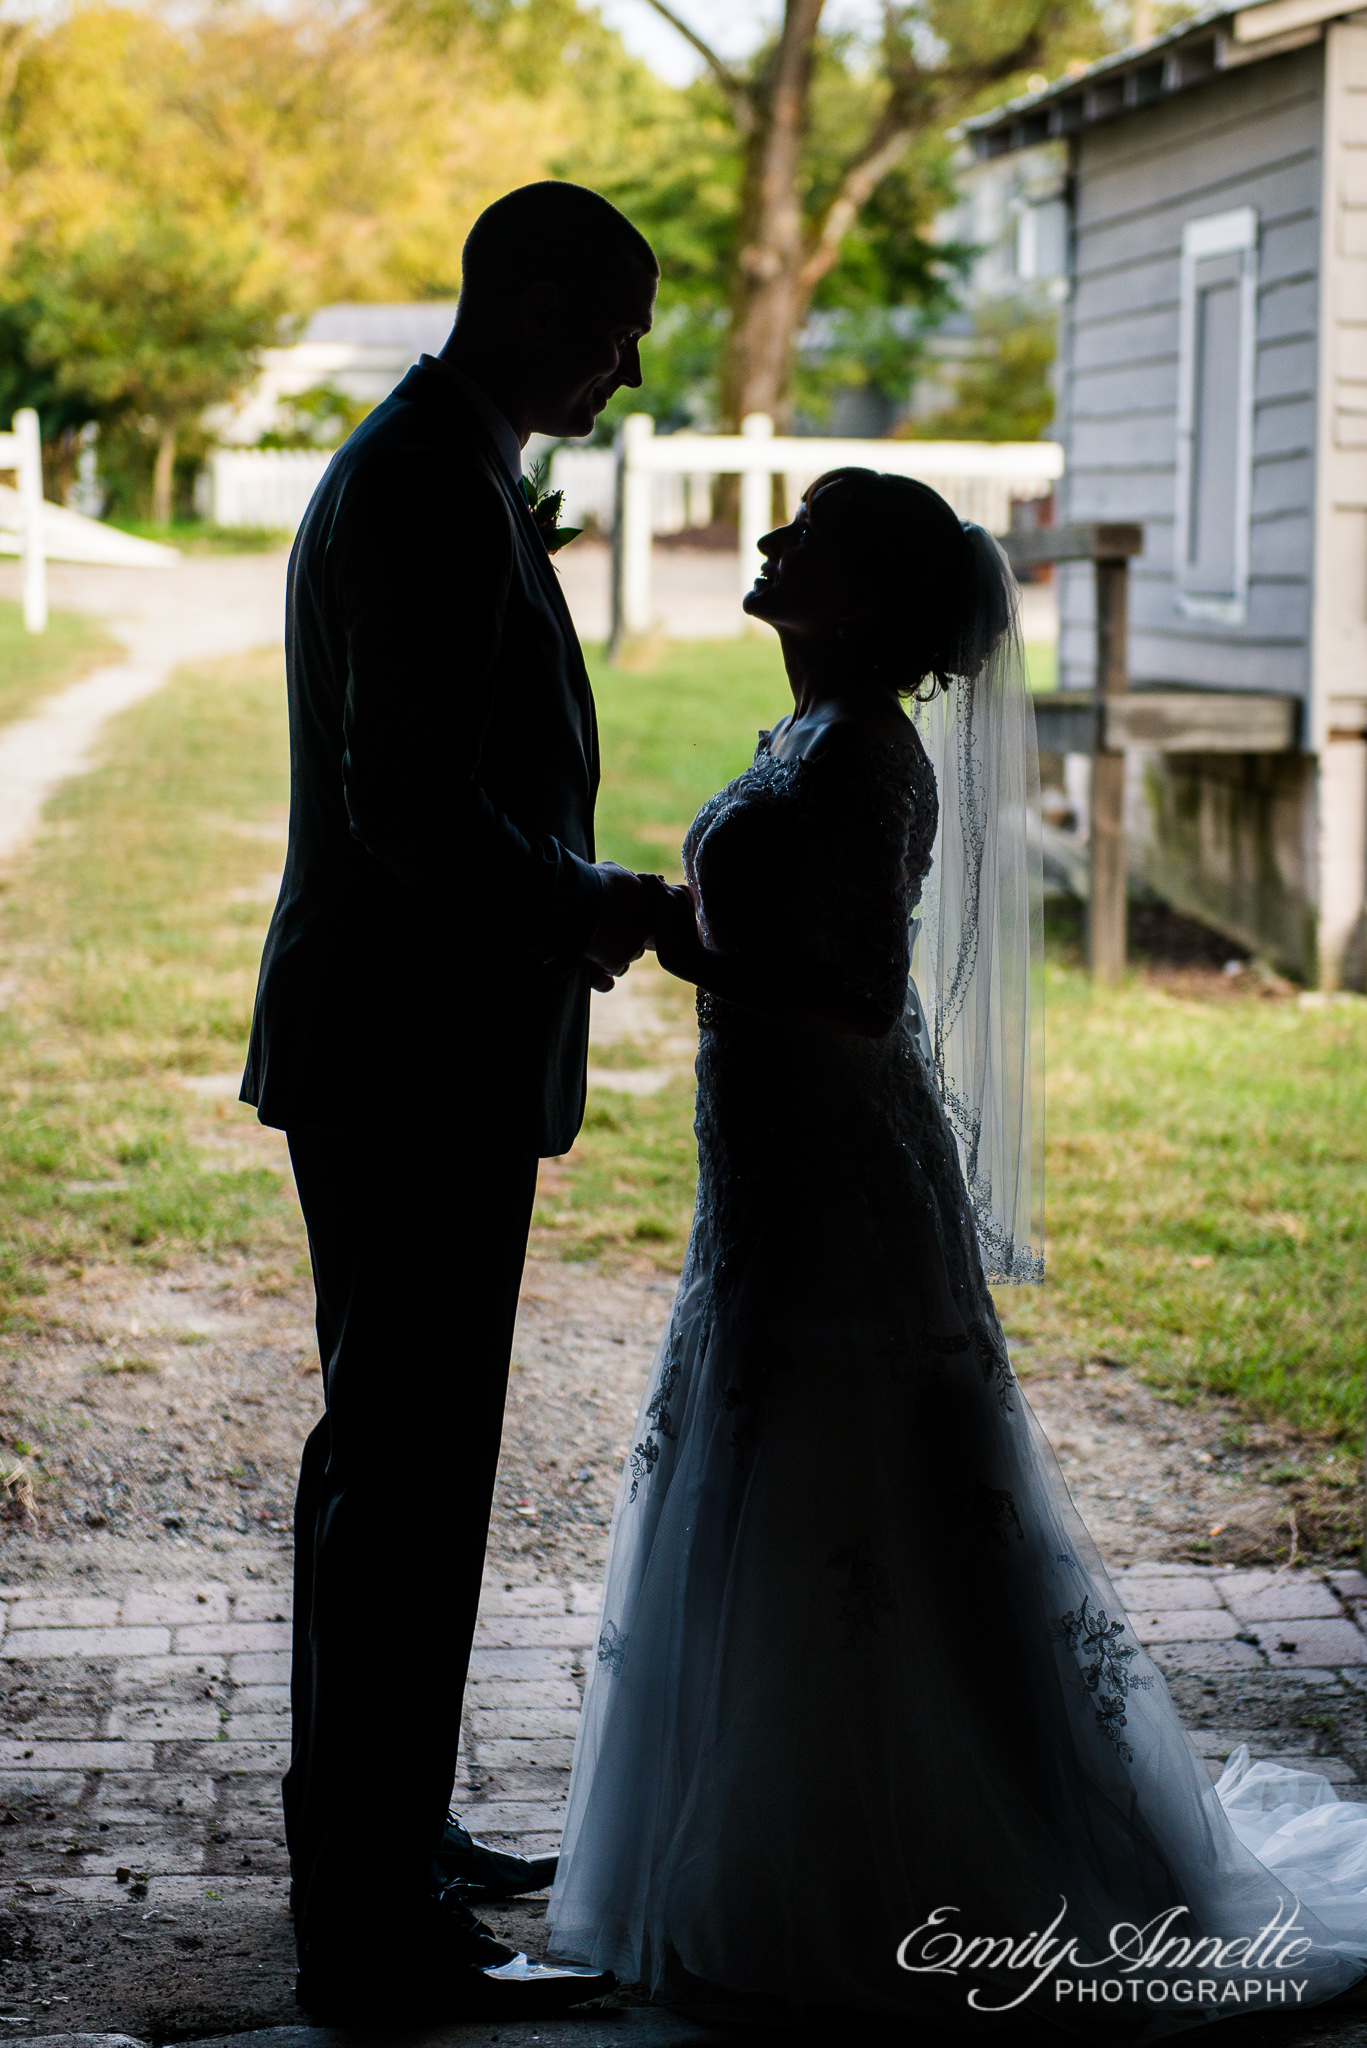 A silhouette of a bride and groom holding hands and looking at each other during their country wedding at Amber Grove near Richmond, Virginia